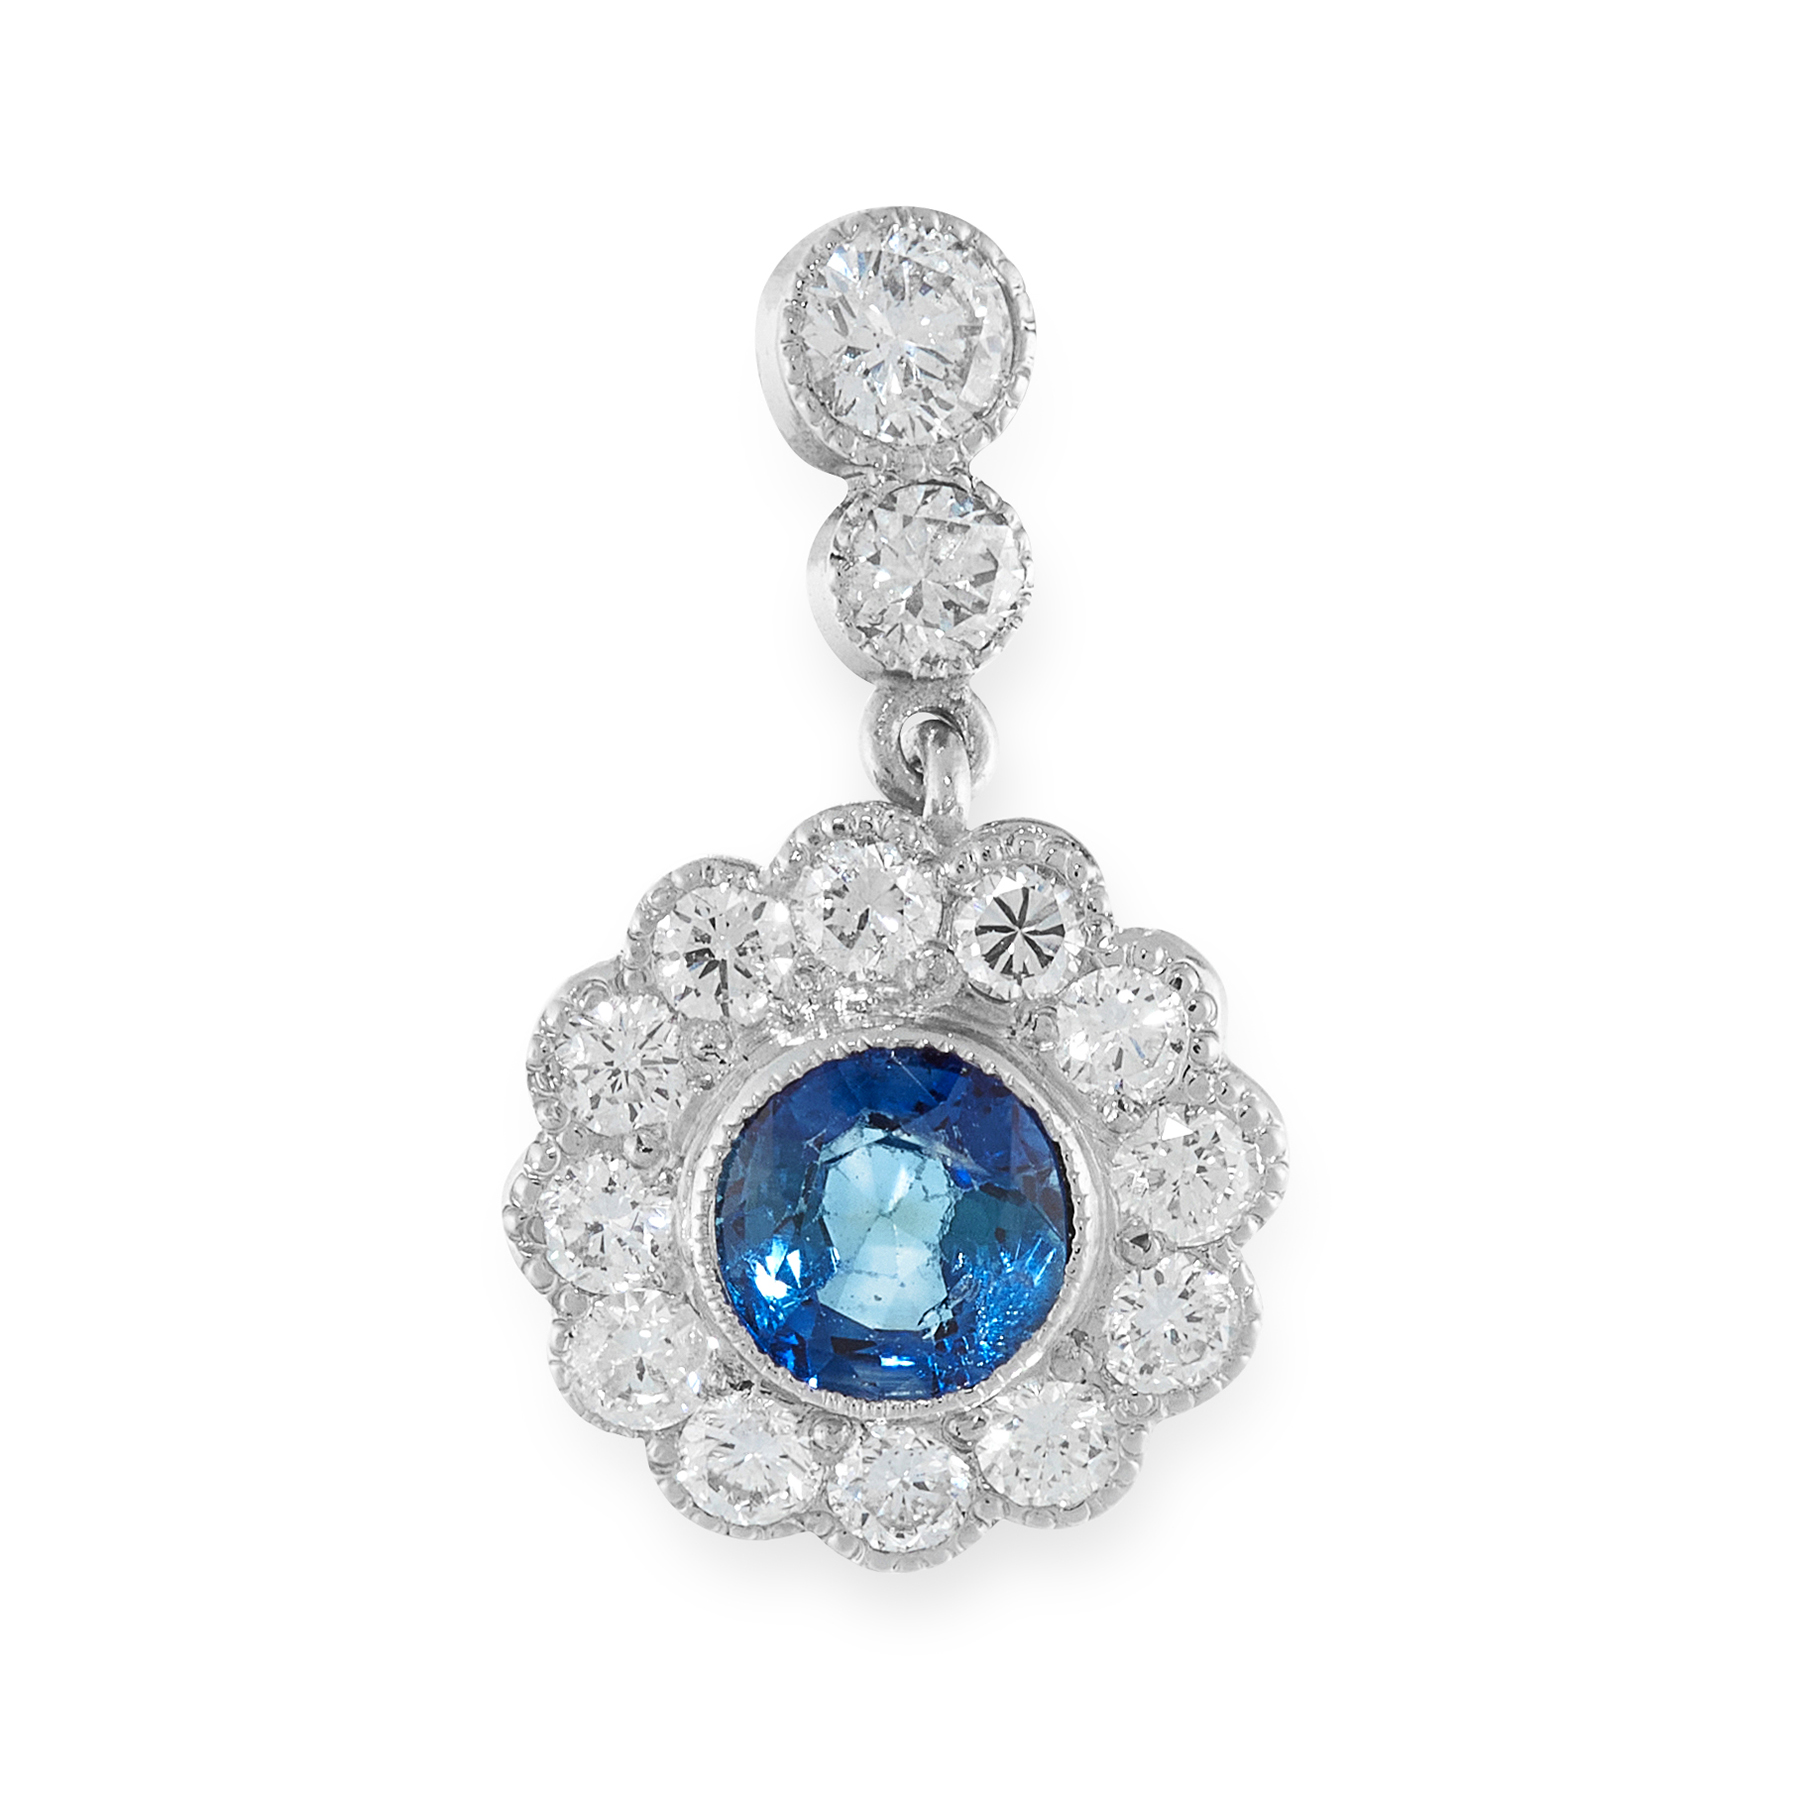 A SAPPHIRE AND DIAMOND PENDANT set with a round cut sapphire of 0.45 carats in a border of round cut